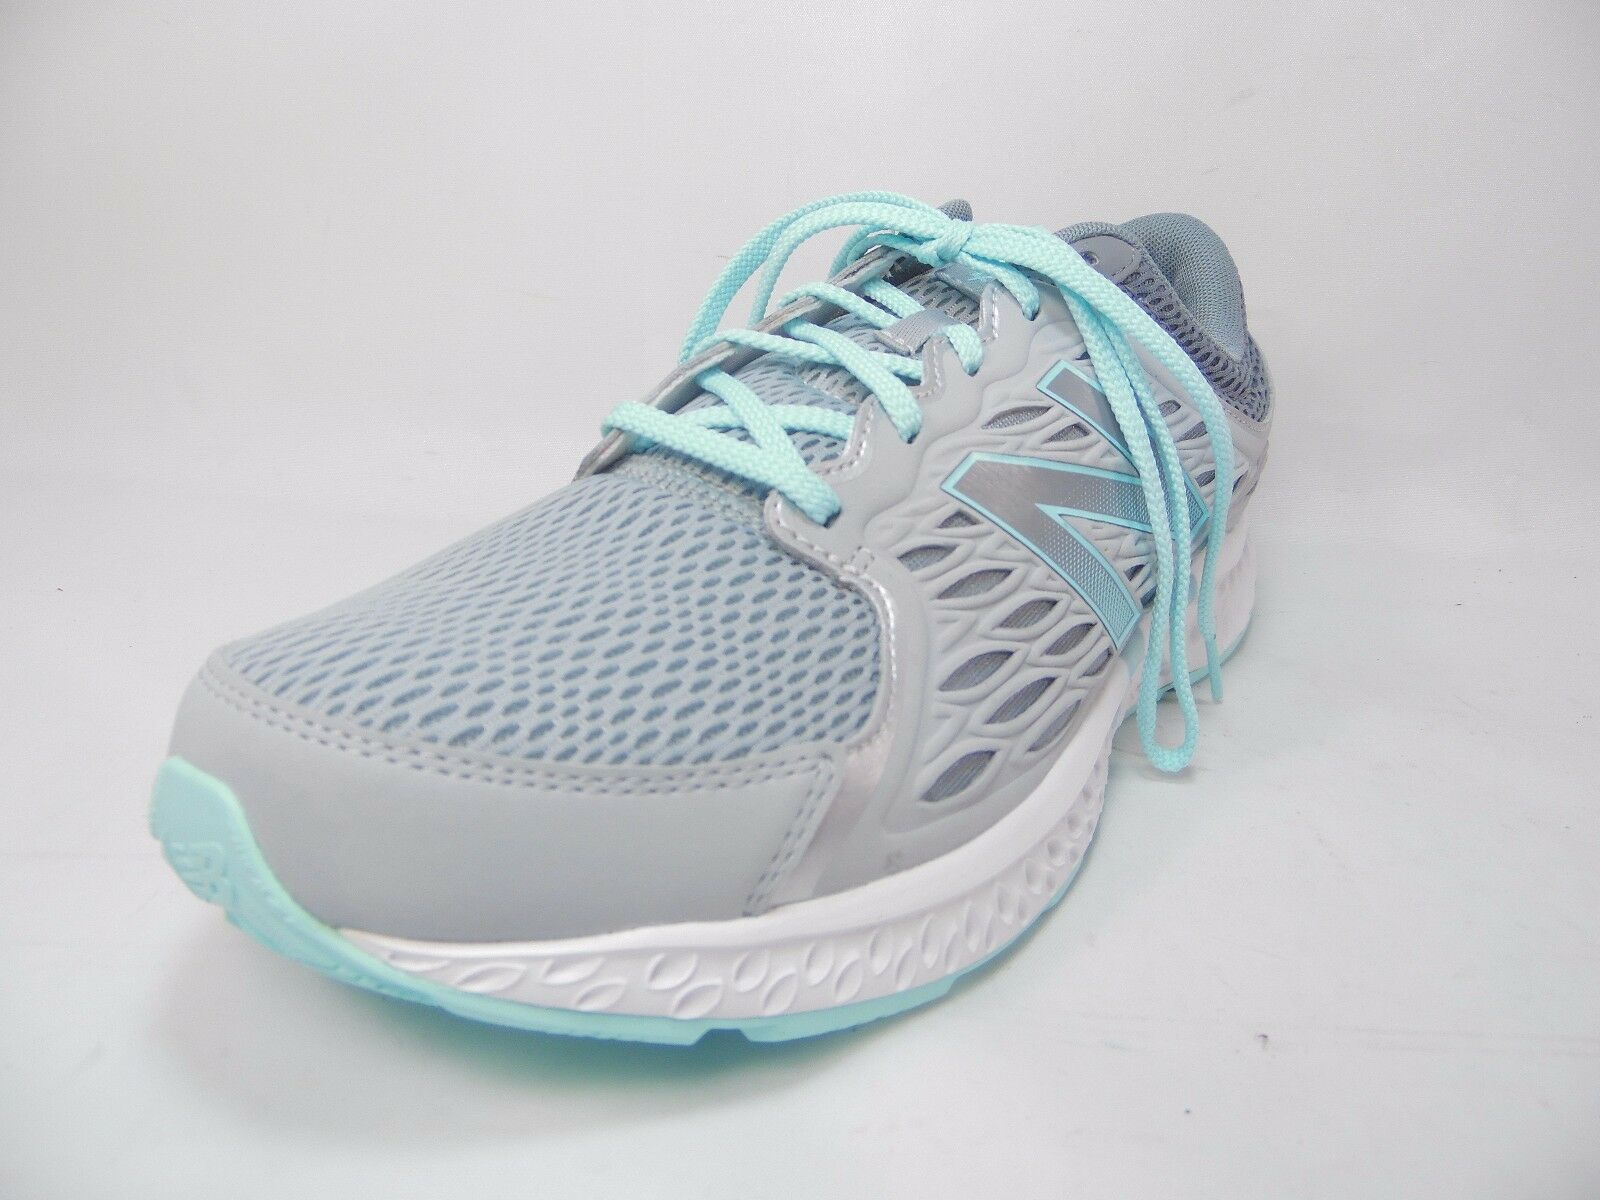 New Balance 420 Womens Running Shoes  Silver Gunmetal Size 8.5D